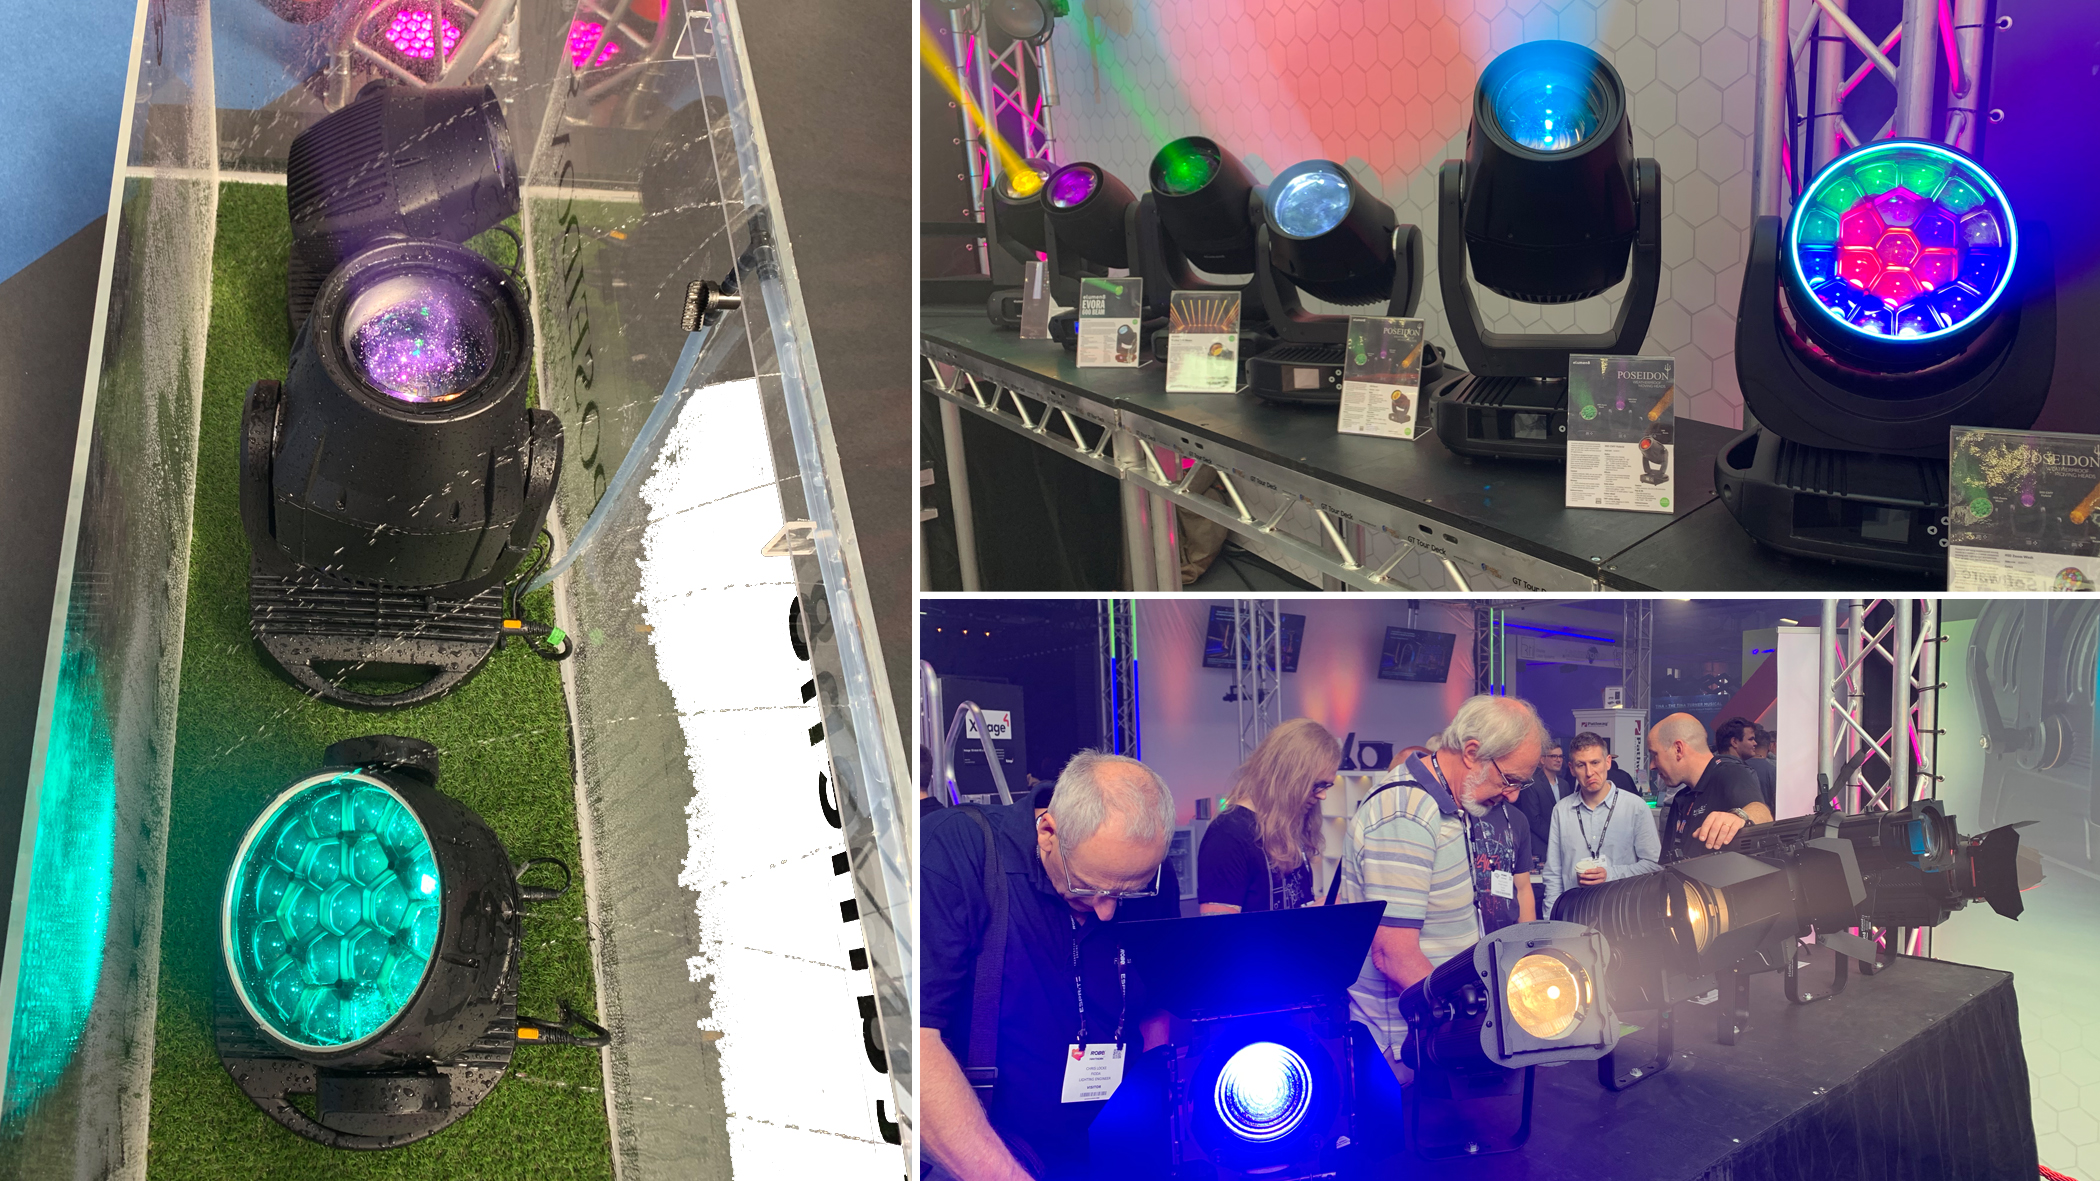 Moving Heads at the Prolight stand